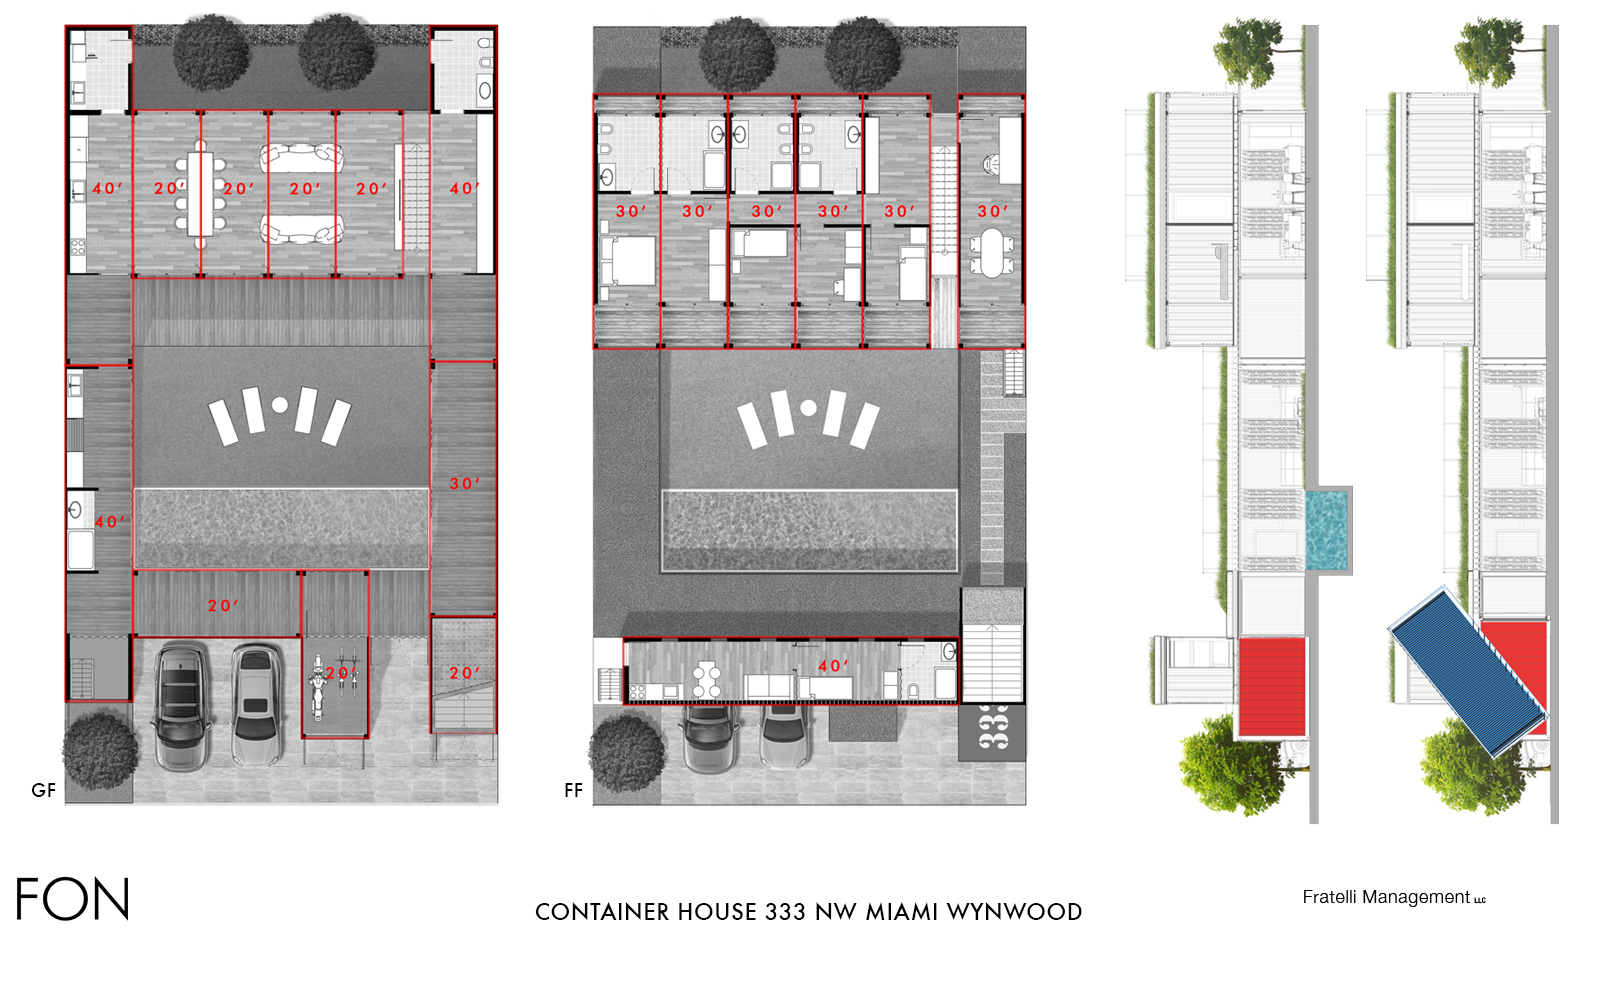 CONTAINERS PLANS